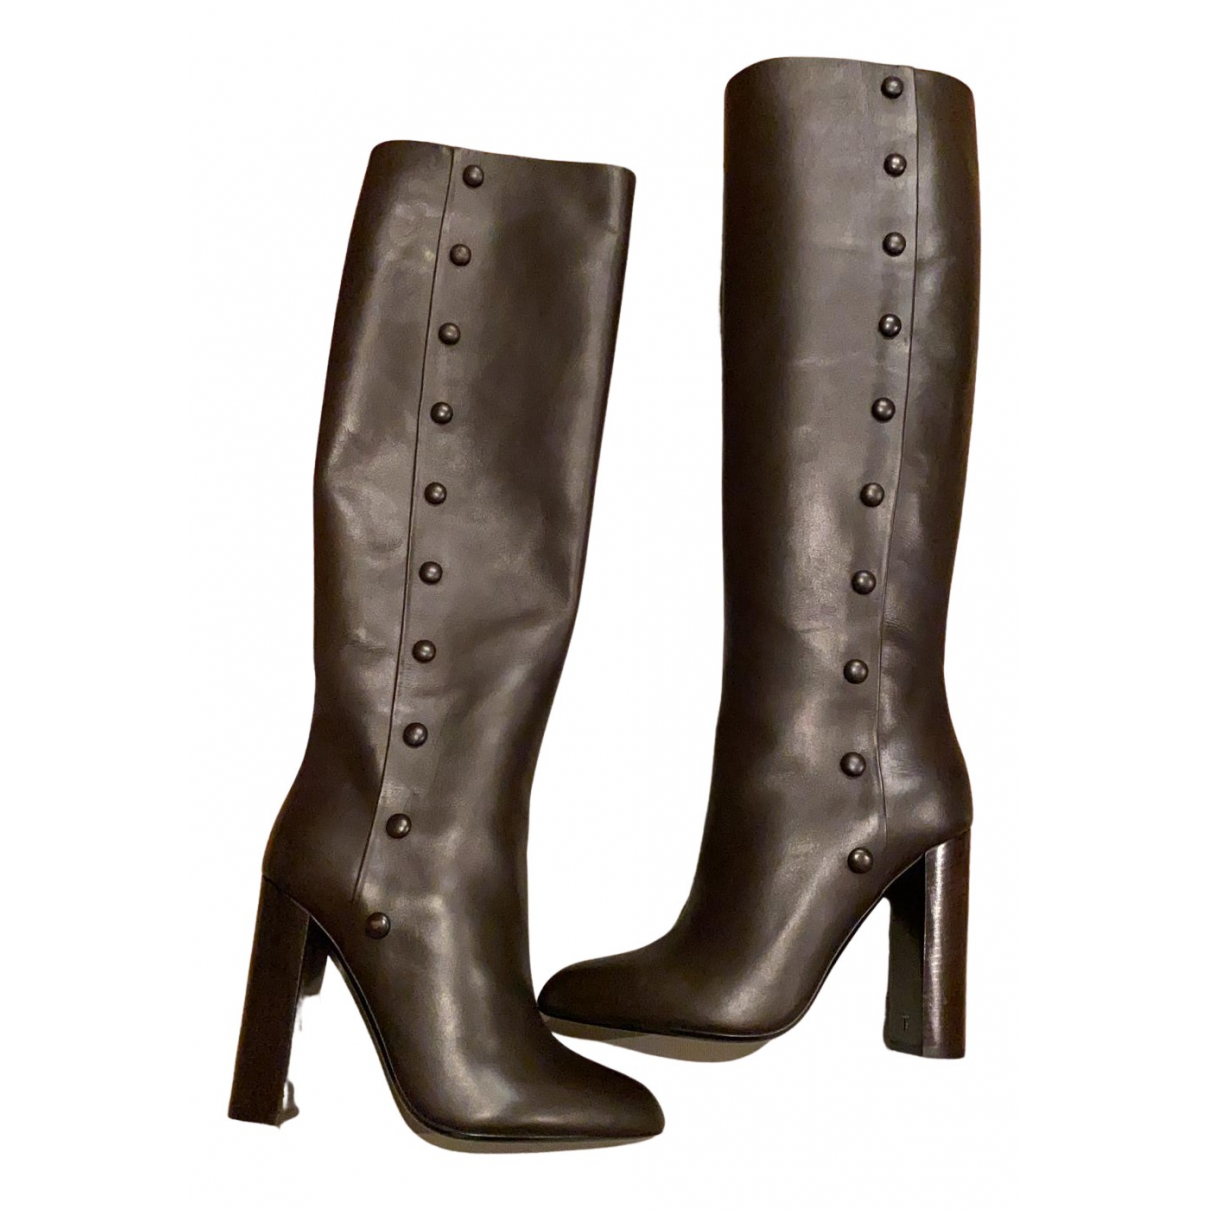 Tom Ford N Brown Leather Boots for Women 39 EU